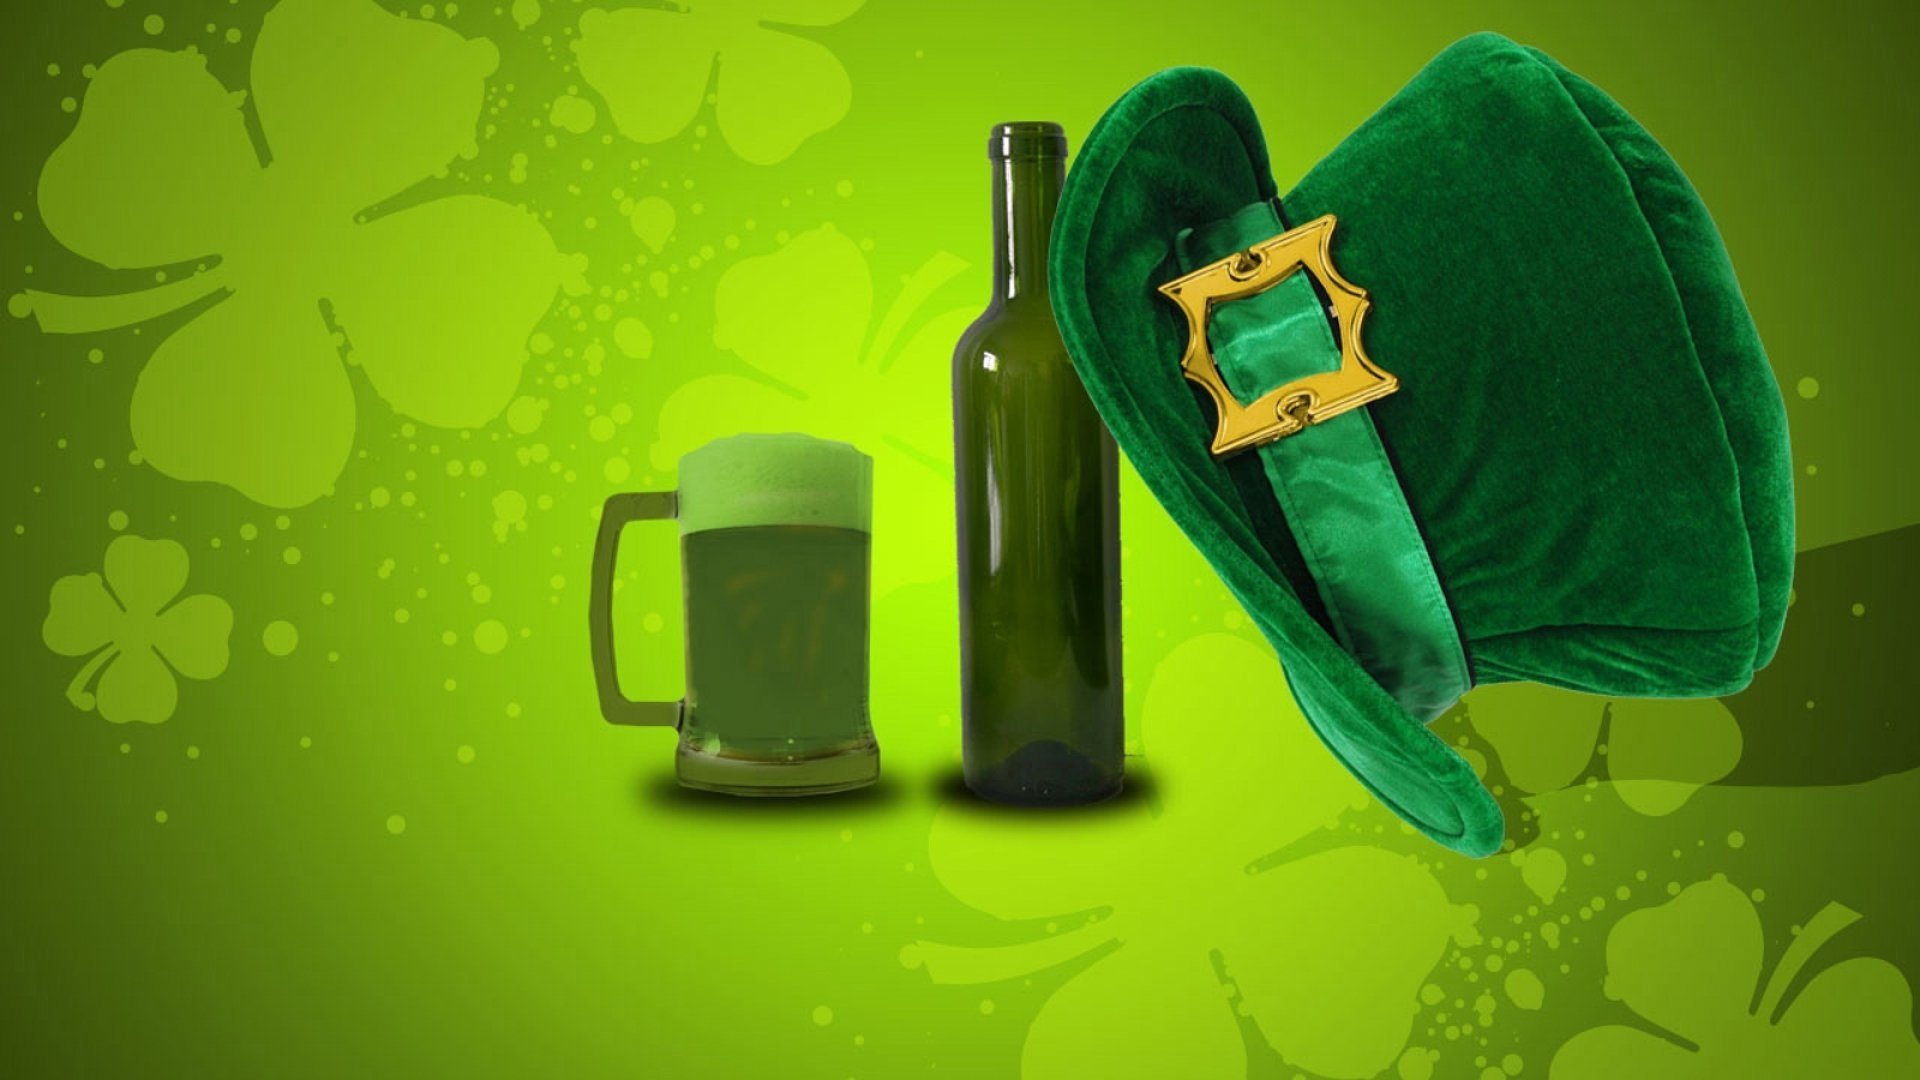 Feiertage - St. Patrick's Day  Bier Hat Wallpaper